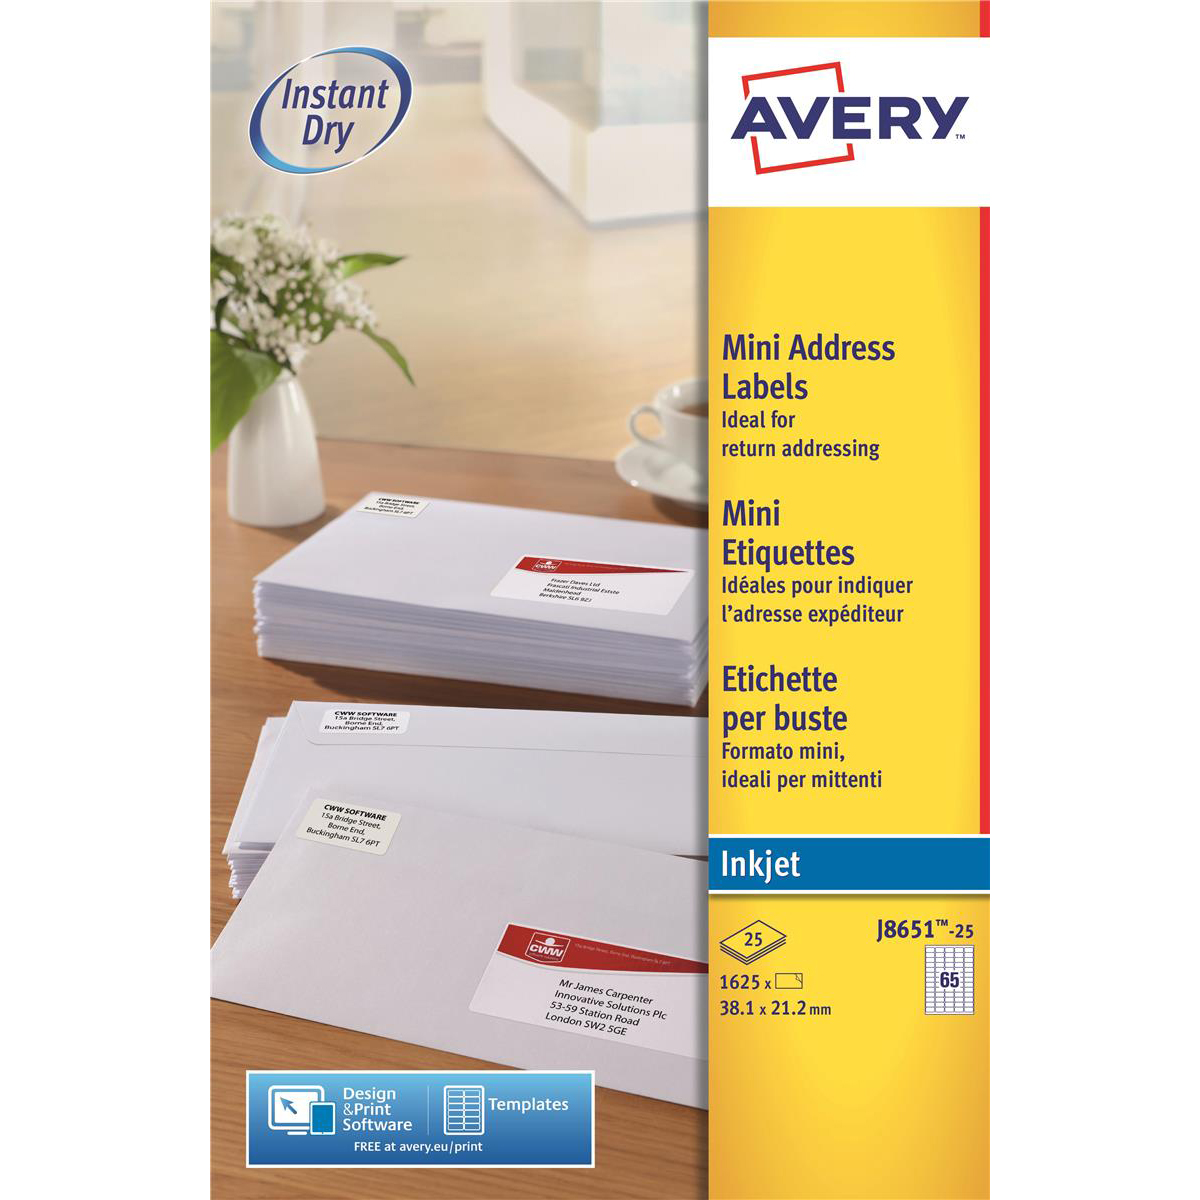 Avery Mini Address Labels Inkjet 65 per Sheet 38.1x21.2mm White Ref J8651-25 1625 Labels